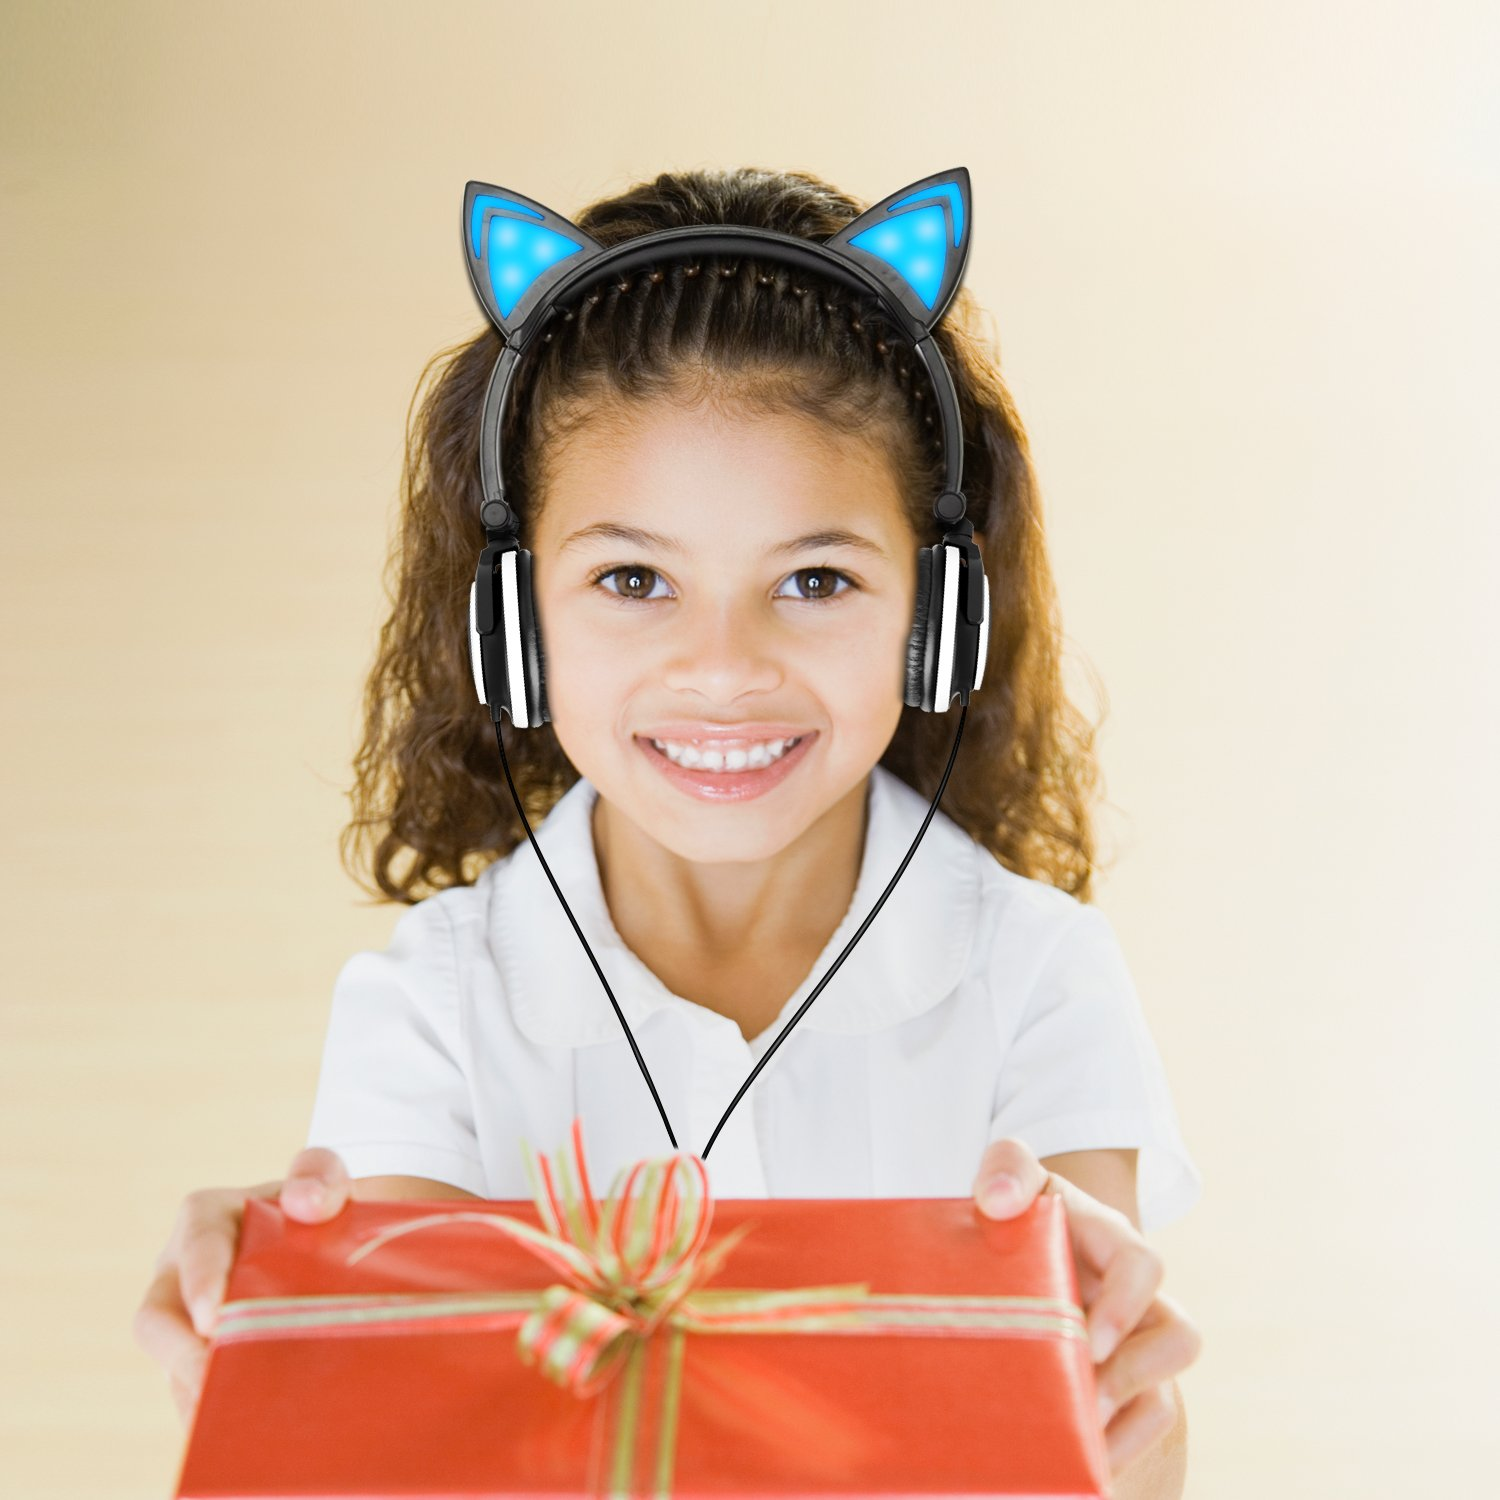 Lobkin Cat Ear Headphone, Foldable Wired Over Ear Kids Headphone with Glowing Light for Girls Children,Compatible for iPhone and Other Android Phones (Black)